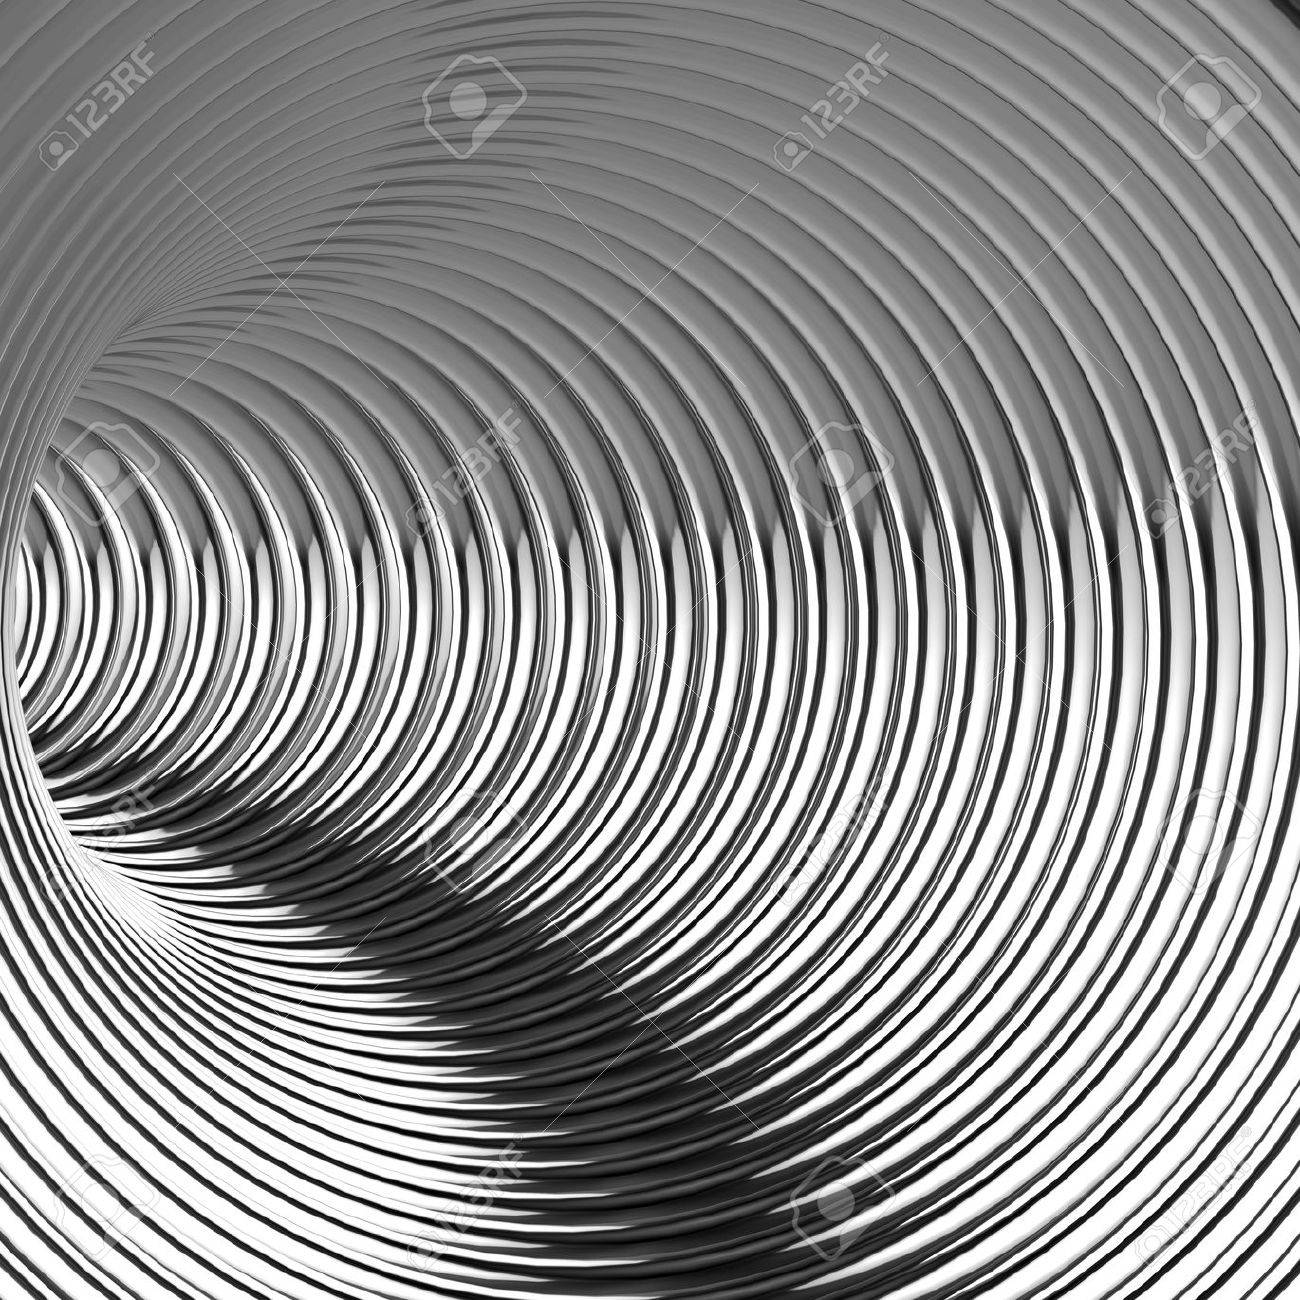 1300x1300 3d Render Of The Interior Of A Futuristic Steel Coil Tunnel Stock